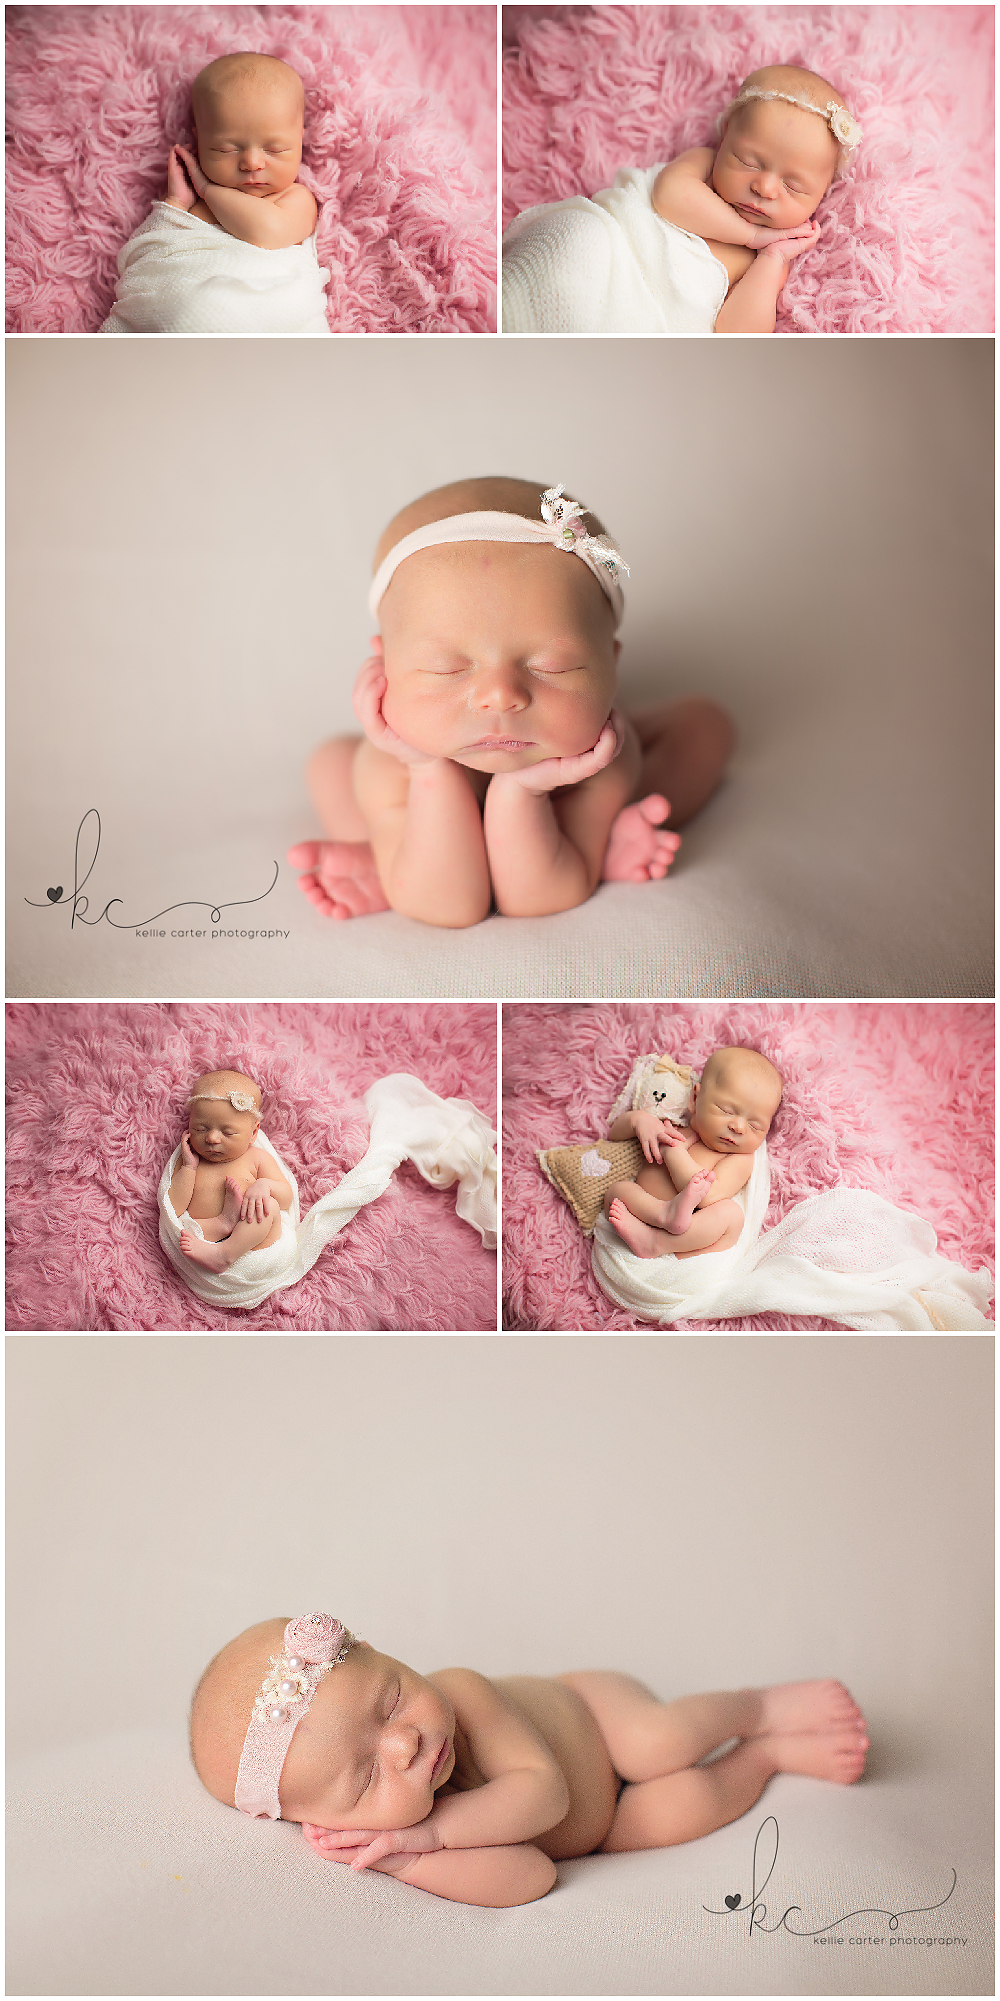 Newborn Photography Session by Kellie Carter